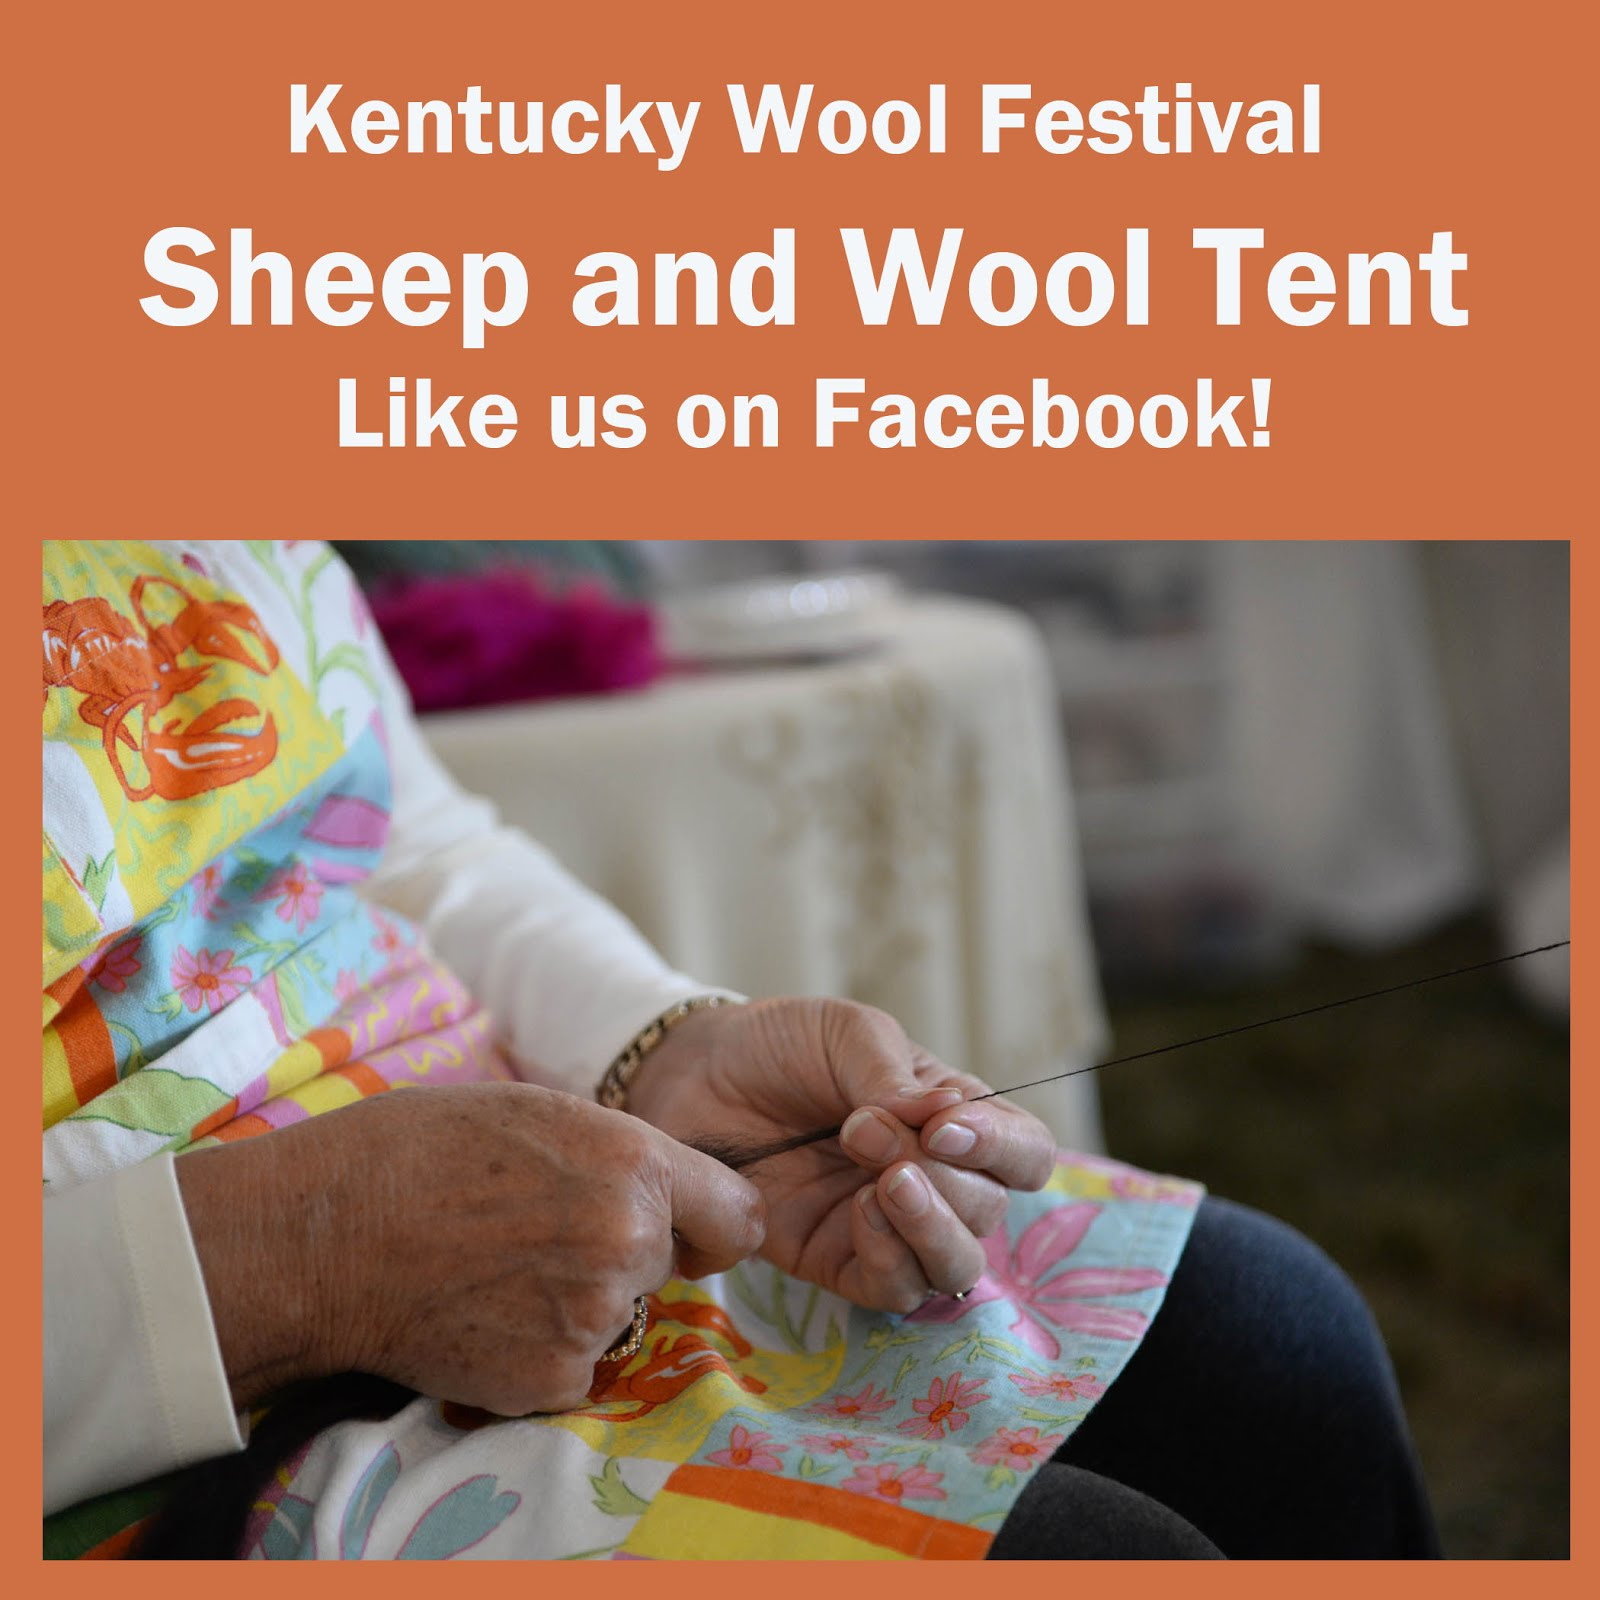 Kentucky Wool Festival Sheep and Wool Tent